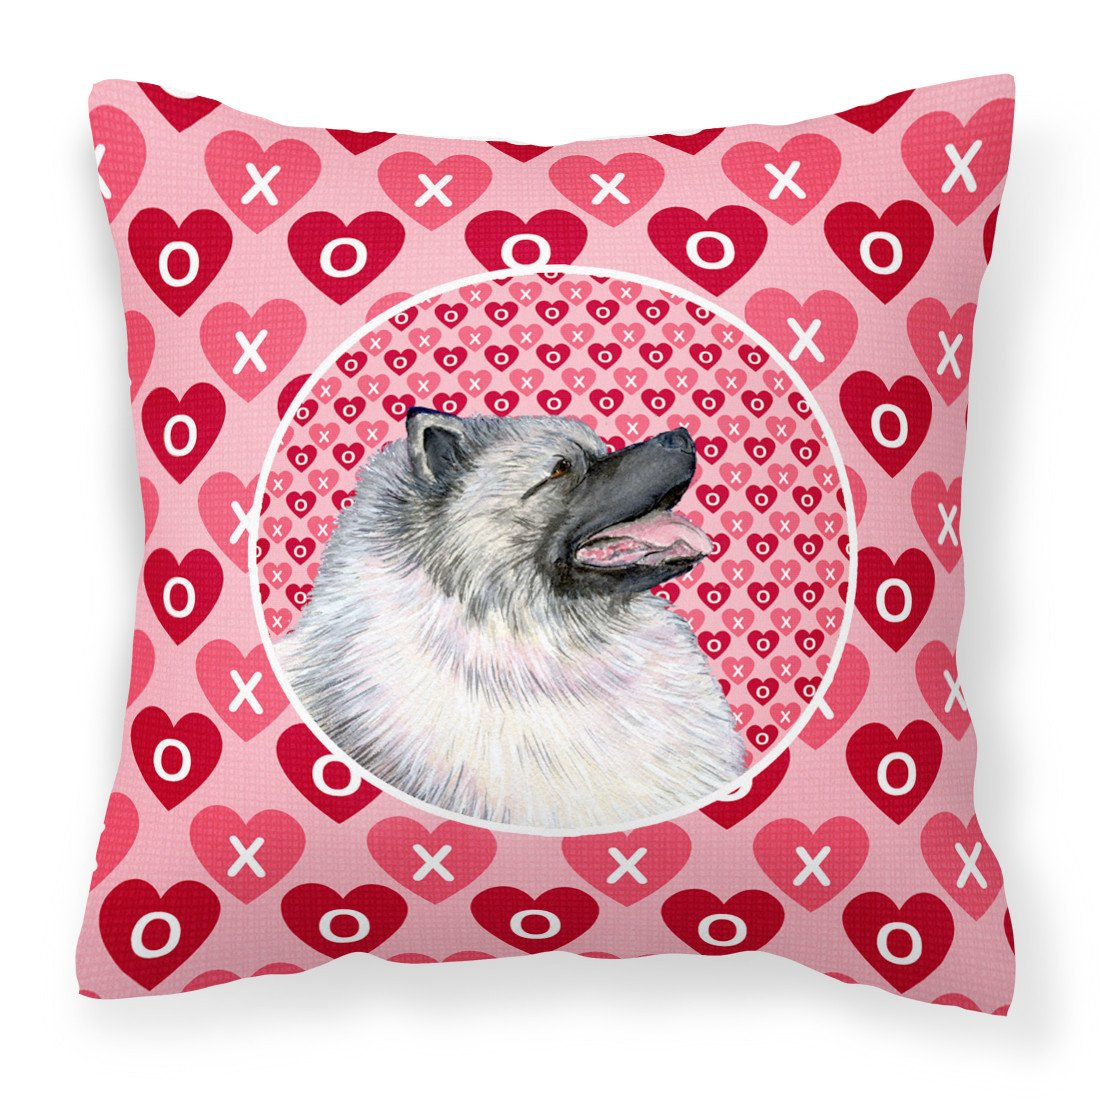 Keeshond Hearts Love and Valentine's Day Portrait Fabric Decorative Pillow SS4488PW1414 by Caroline's Treasures